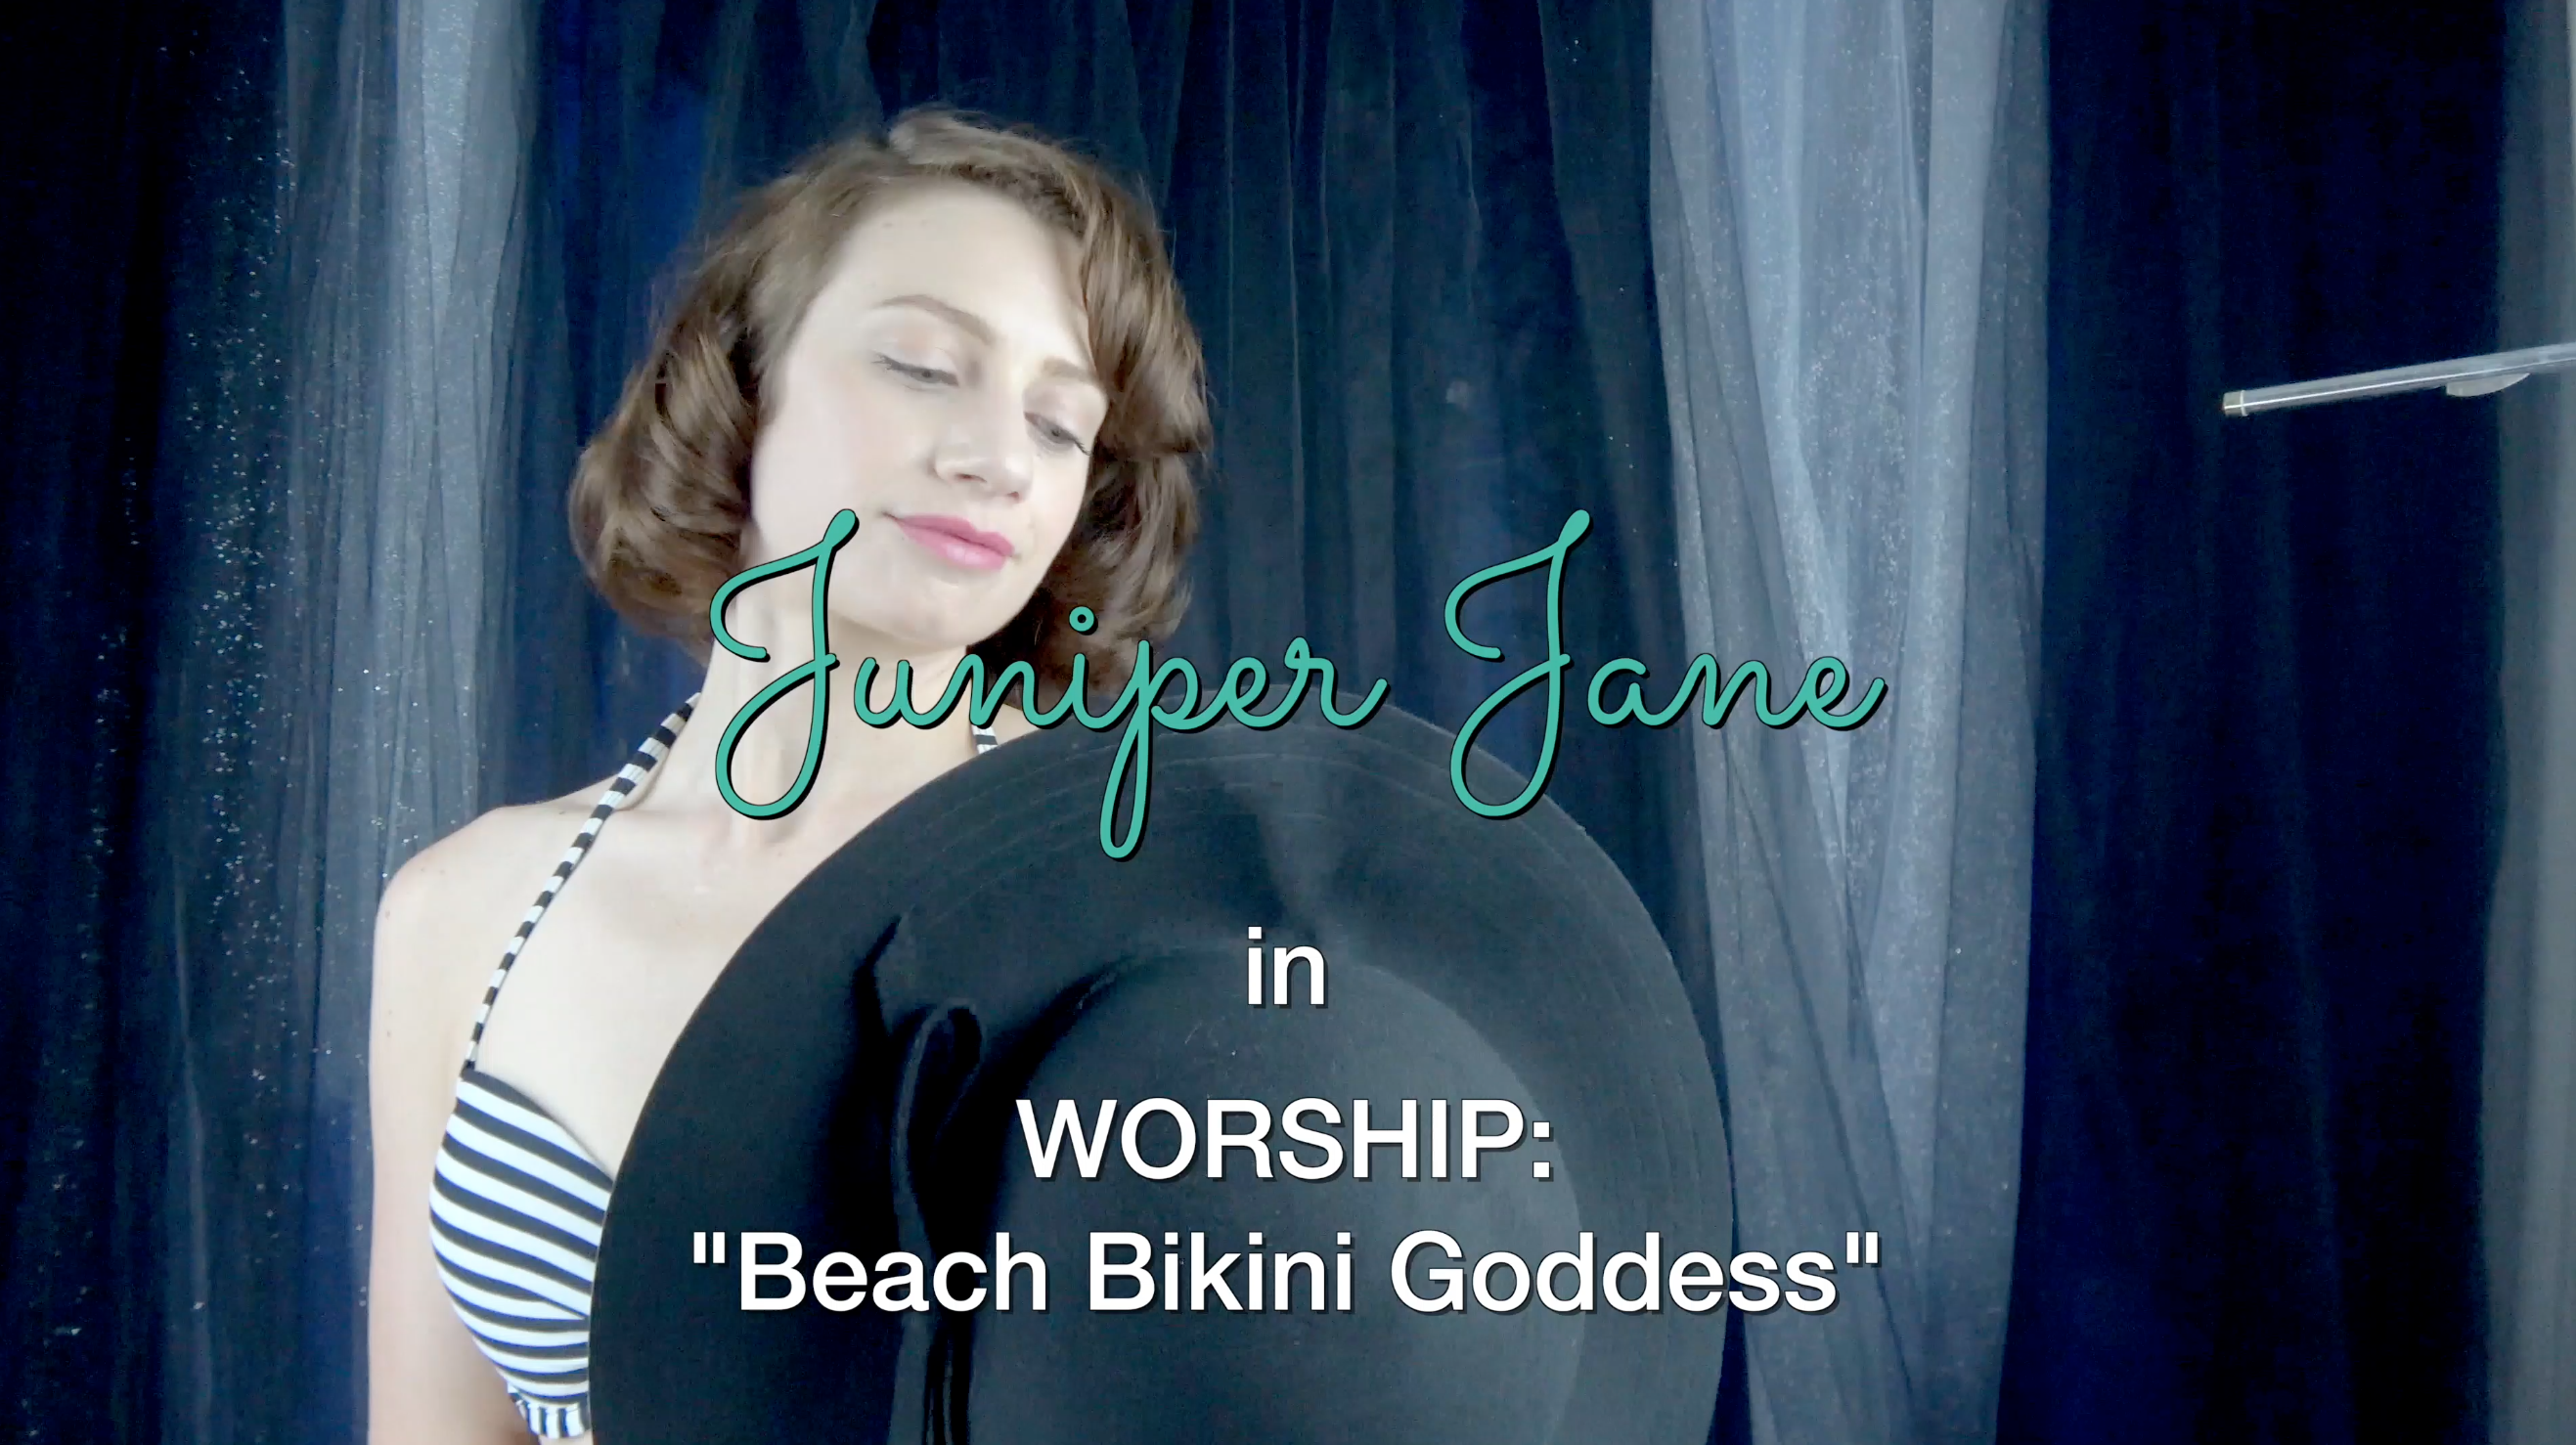 Goddess Juniper Jane Beach Bikini Goddess Worship | Pin Up Girl Porn Star | Vintage Erotica | Superior Mistress